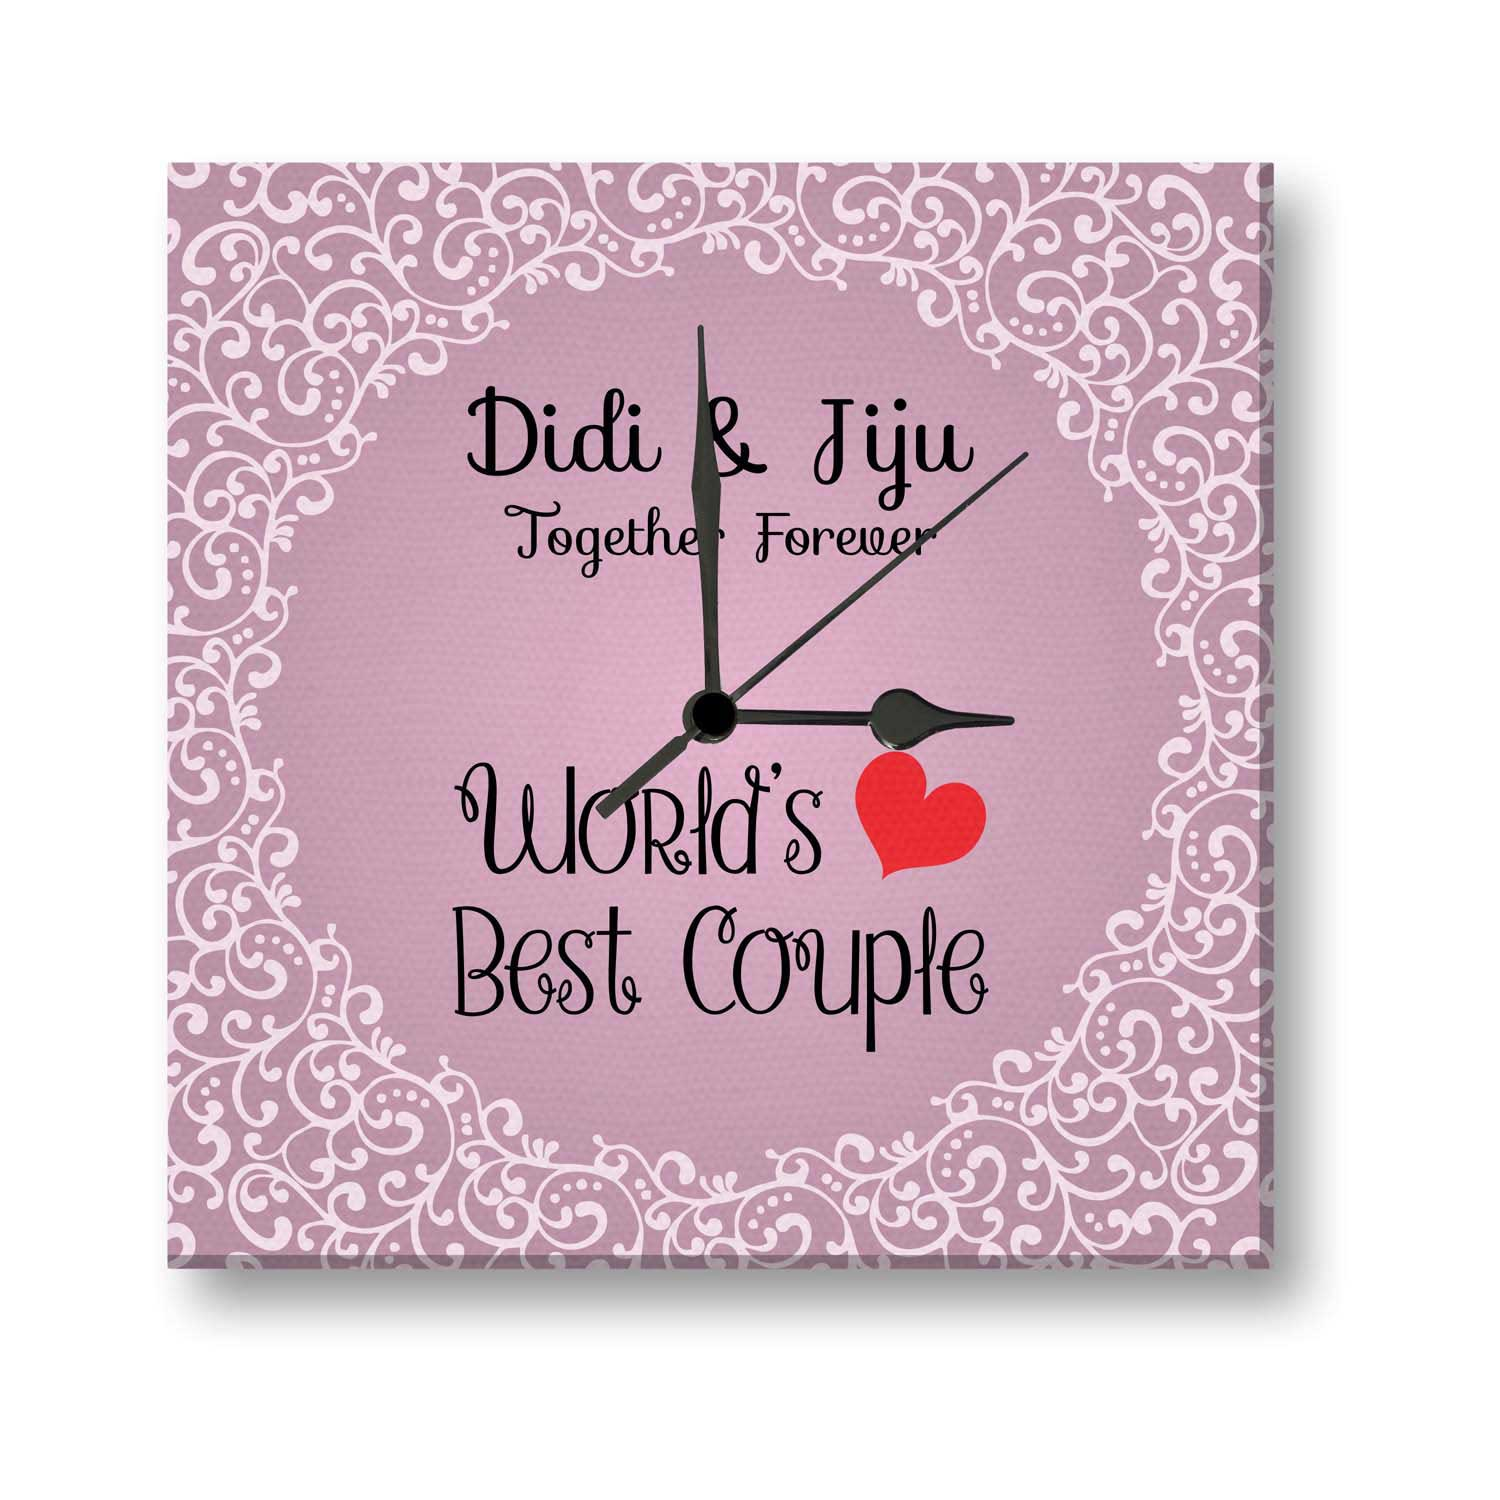 Wedding Anniversary Quotes To Sister: Worlds Best Couple Didi And Jiju Canvas Wall Clock